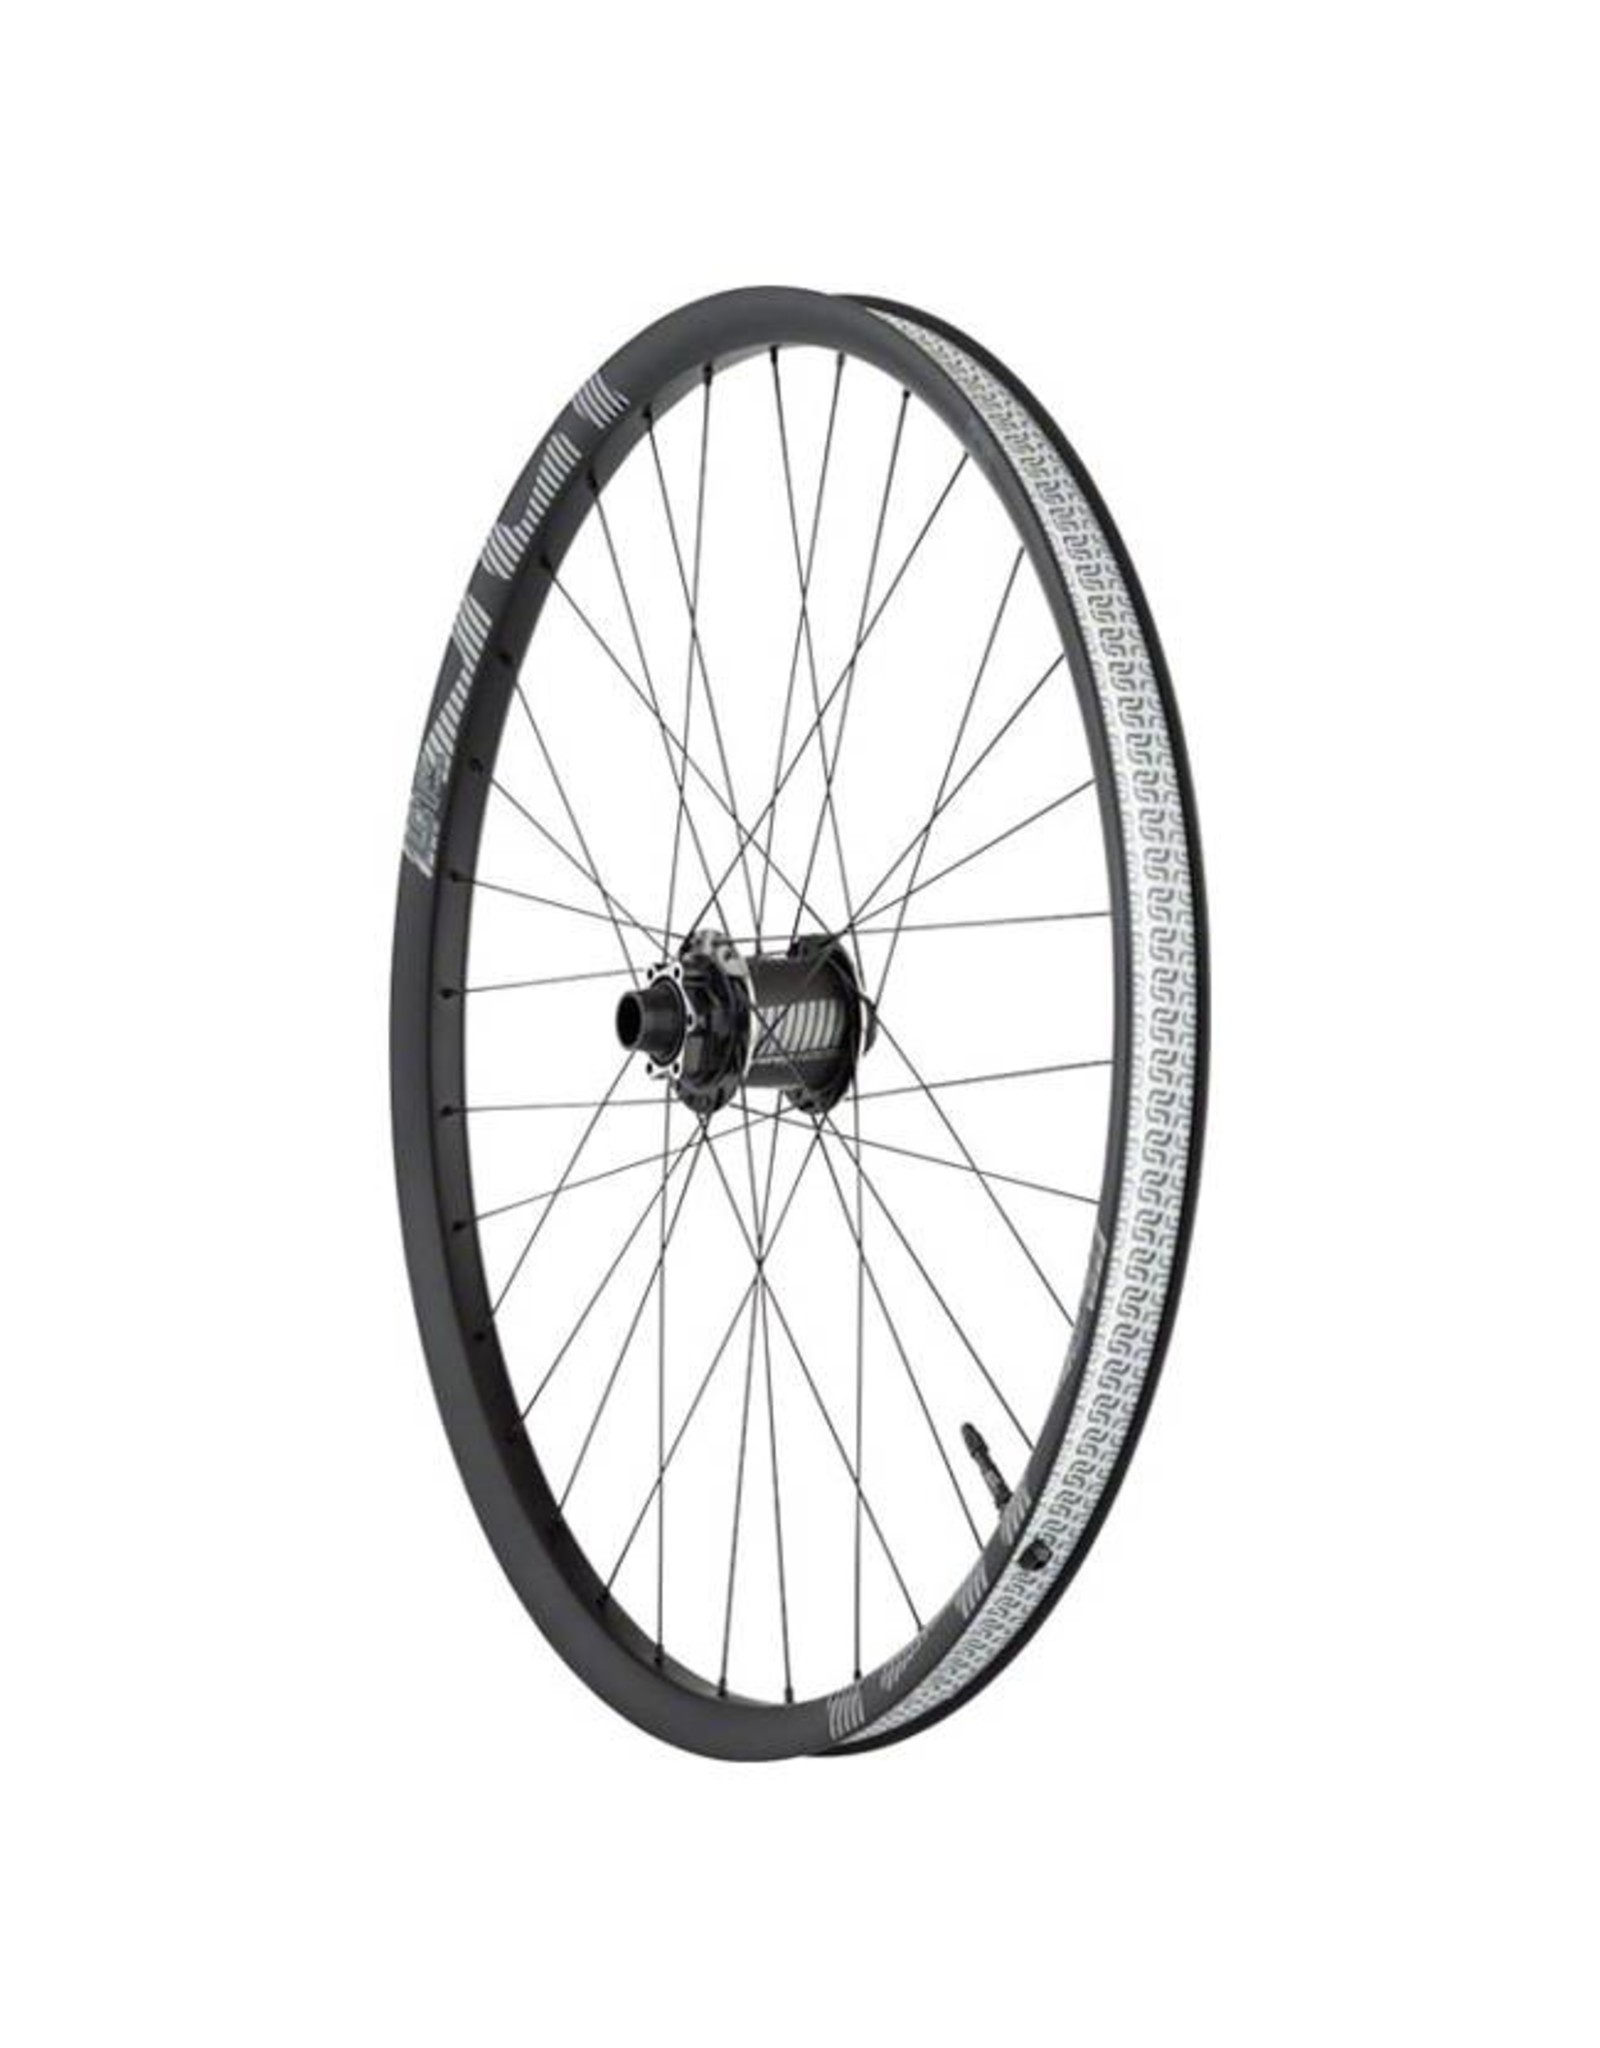 "e*thirteen by The Hive e*thirteen LG1r Carbon Front Wheel 27.5"" 20x110mm Tubeless 31mm Inner Width"